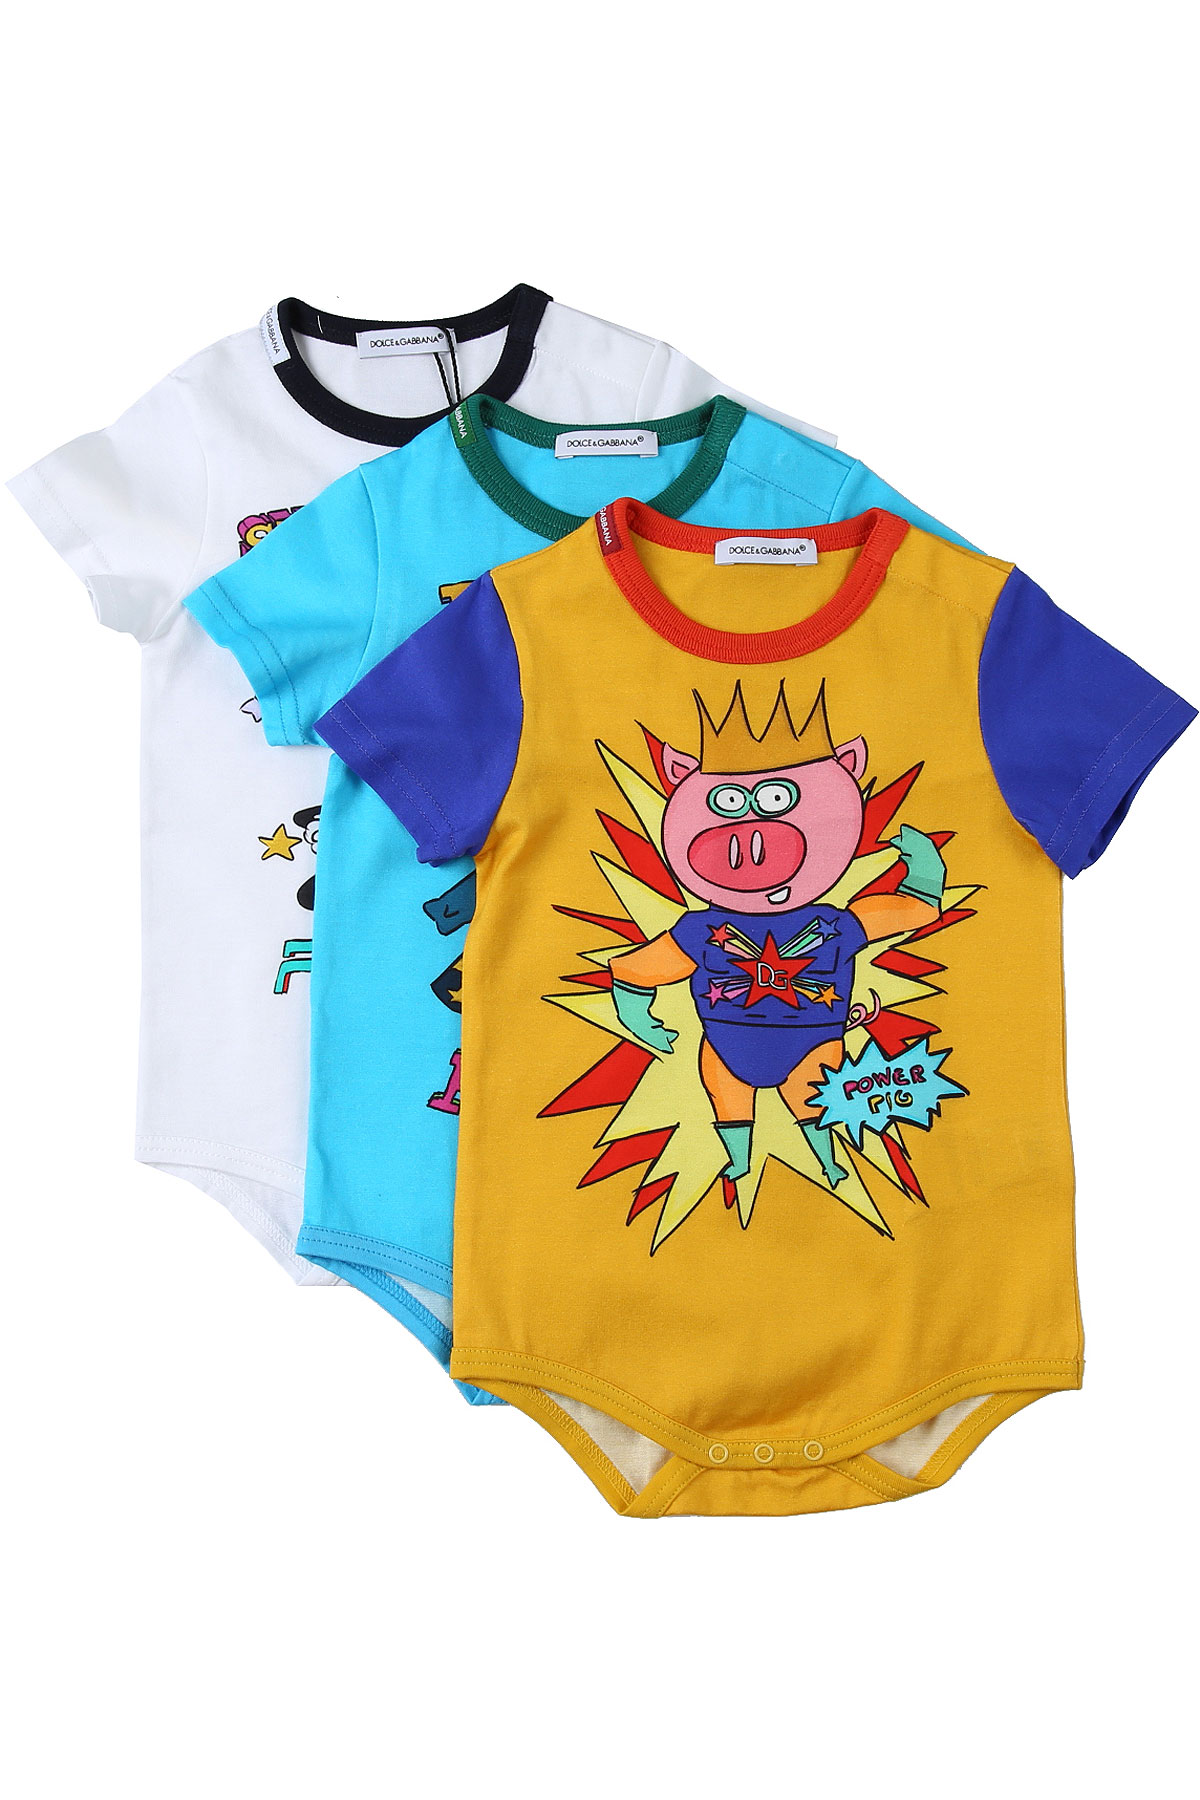 Dolce & Gabbana Baby Bodysuits & Onesies for Boys On Sale in Outlet, Multicolor, Cotton, 2019, 18M 24M